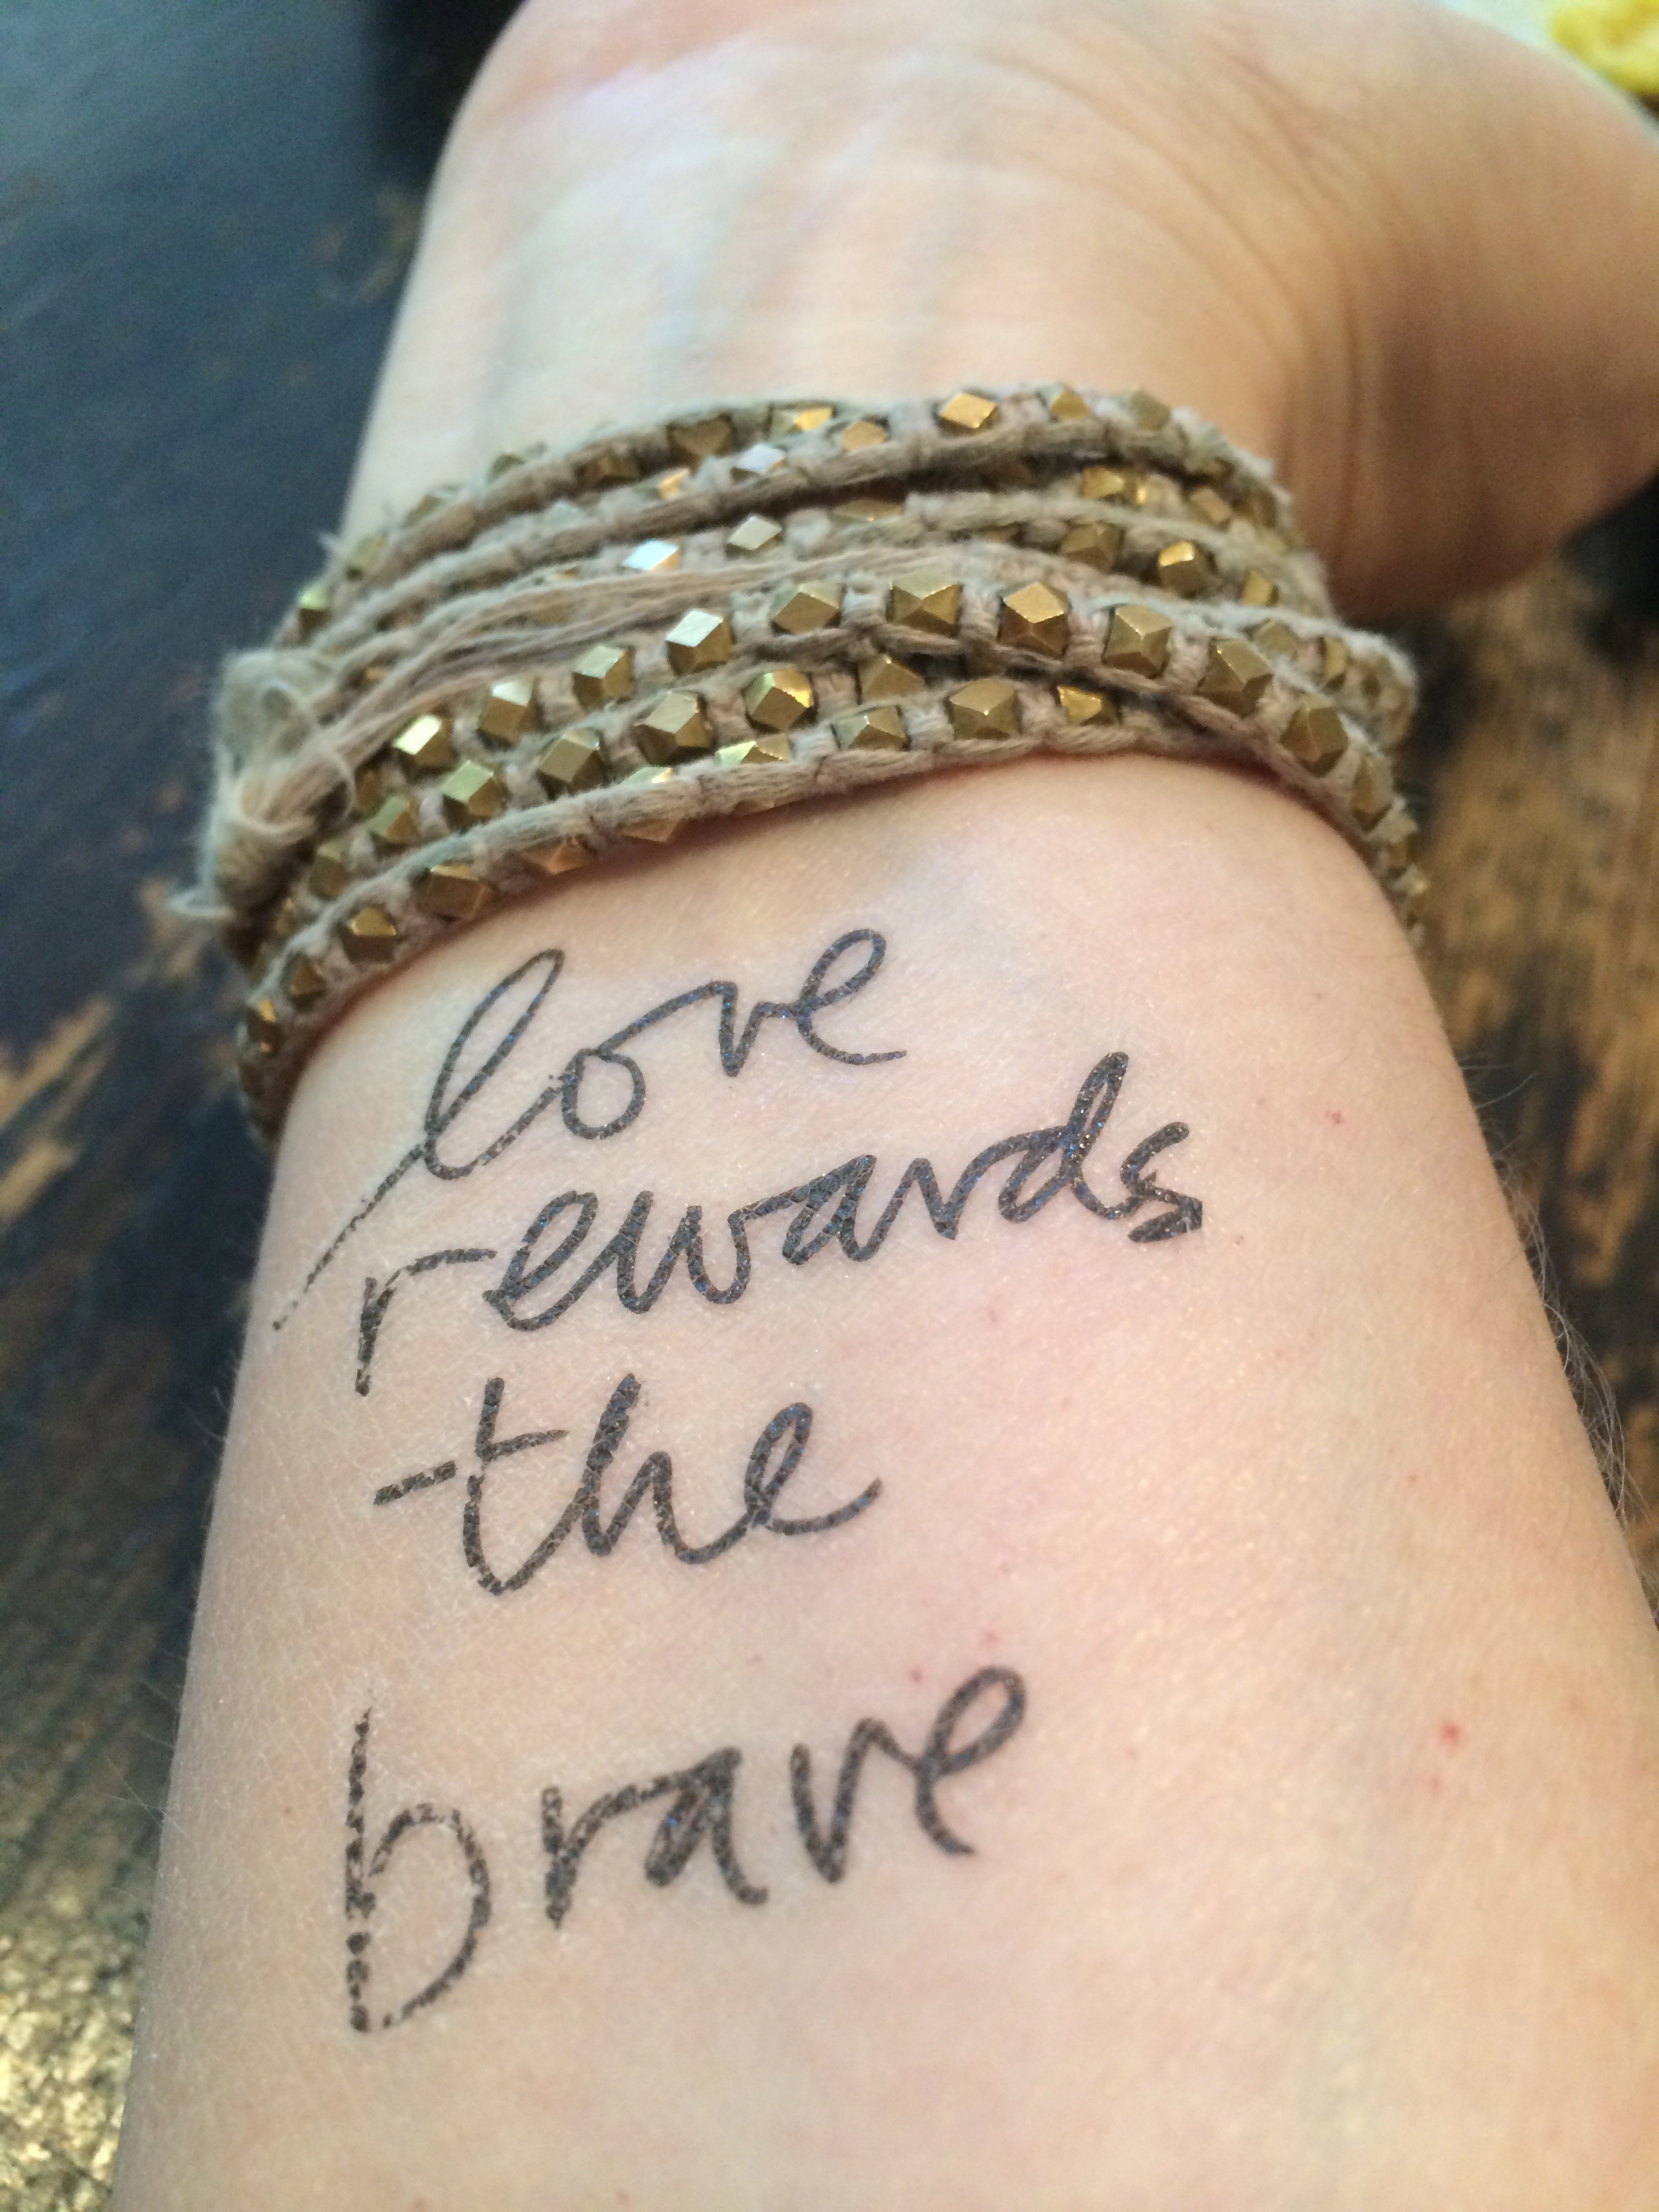 Photo Credit: Elana Kilkenny (Temporary Tattoo by Danielle LaPorte)